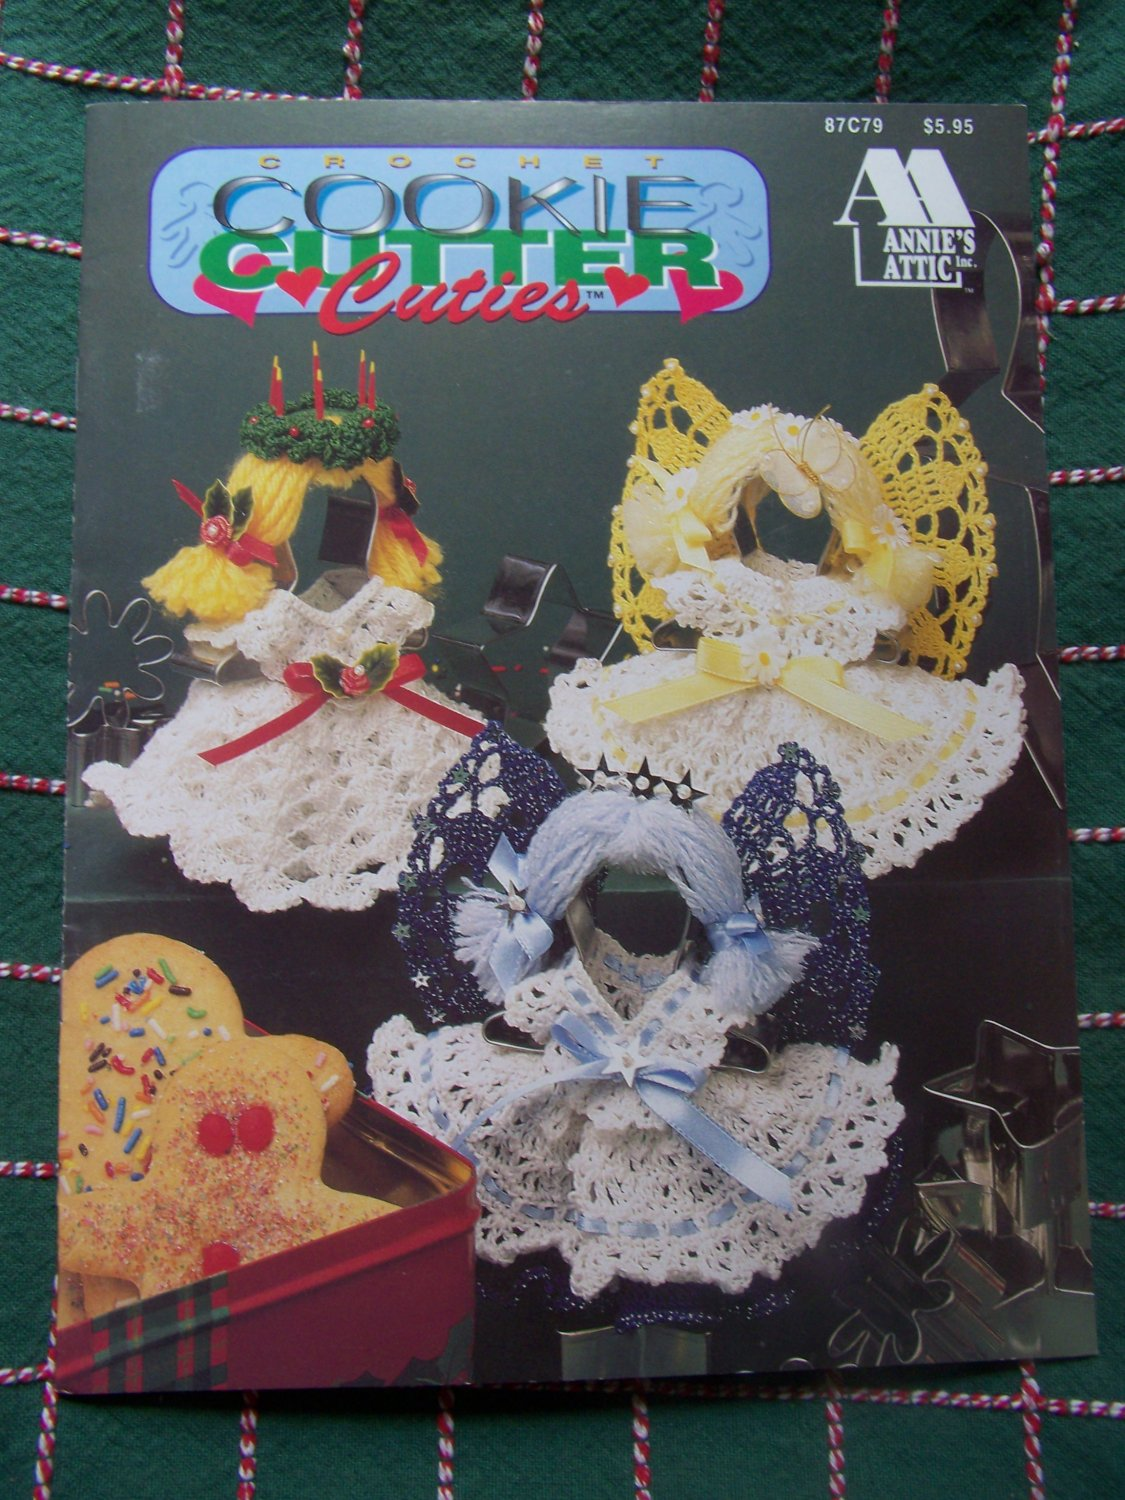 New Annie's Attic Crochet Patterns Cookie Cutter Cuties Dolls Ornaments 87C79